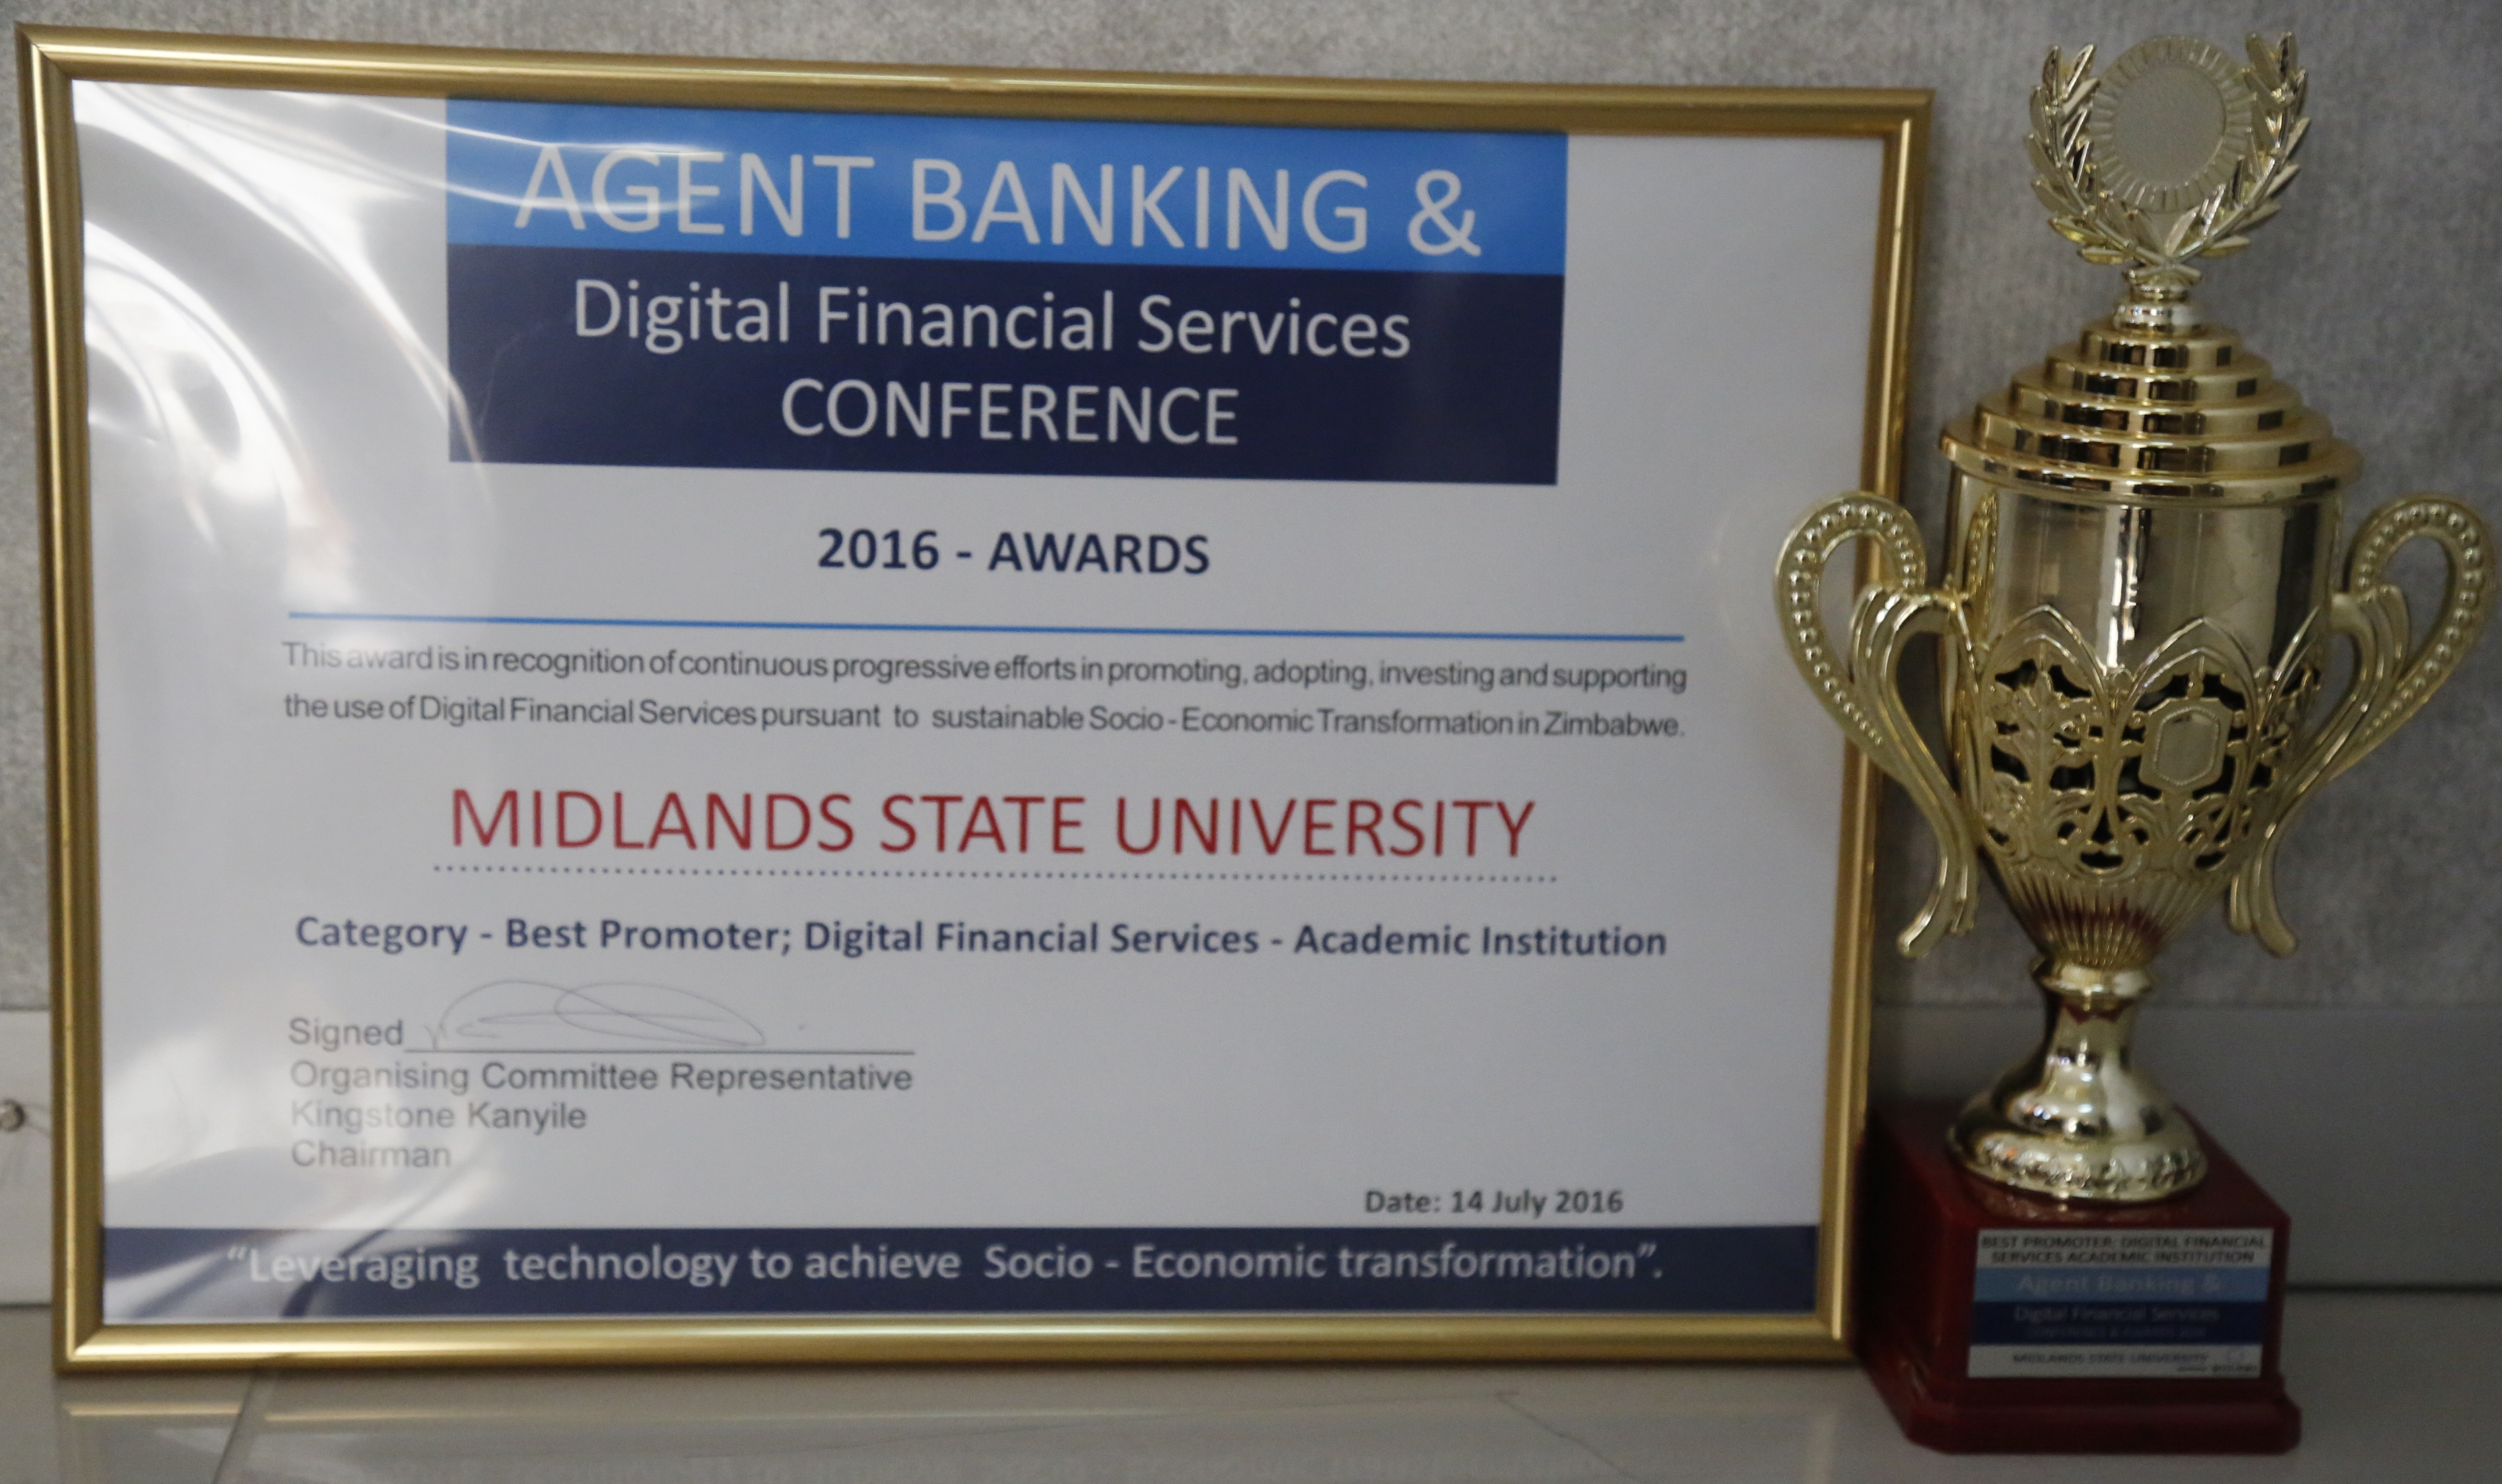 MSU Receives Award For Digital Financial Services Innovation